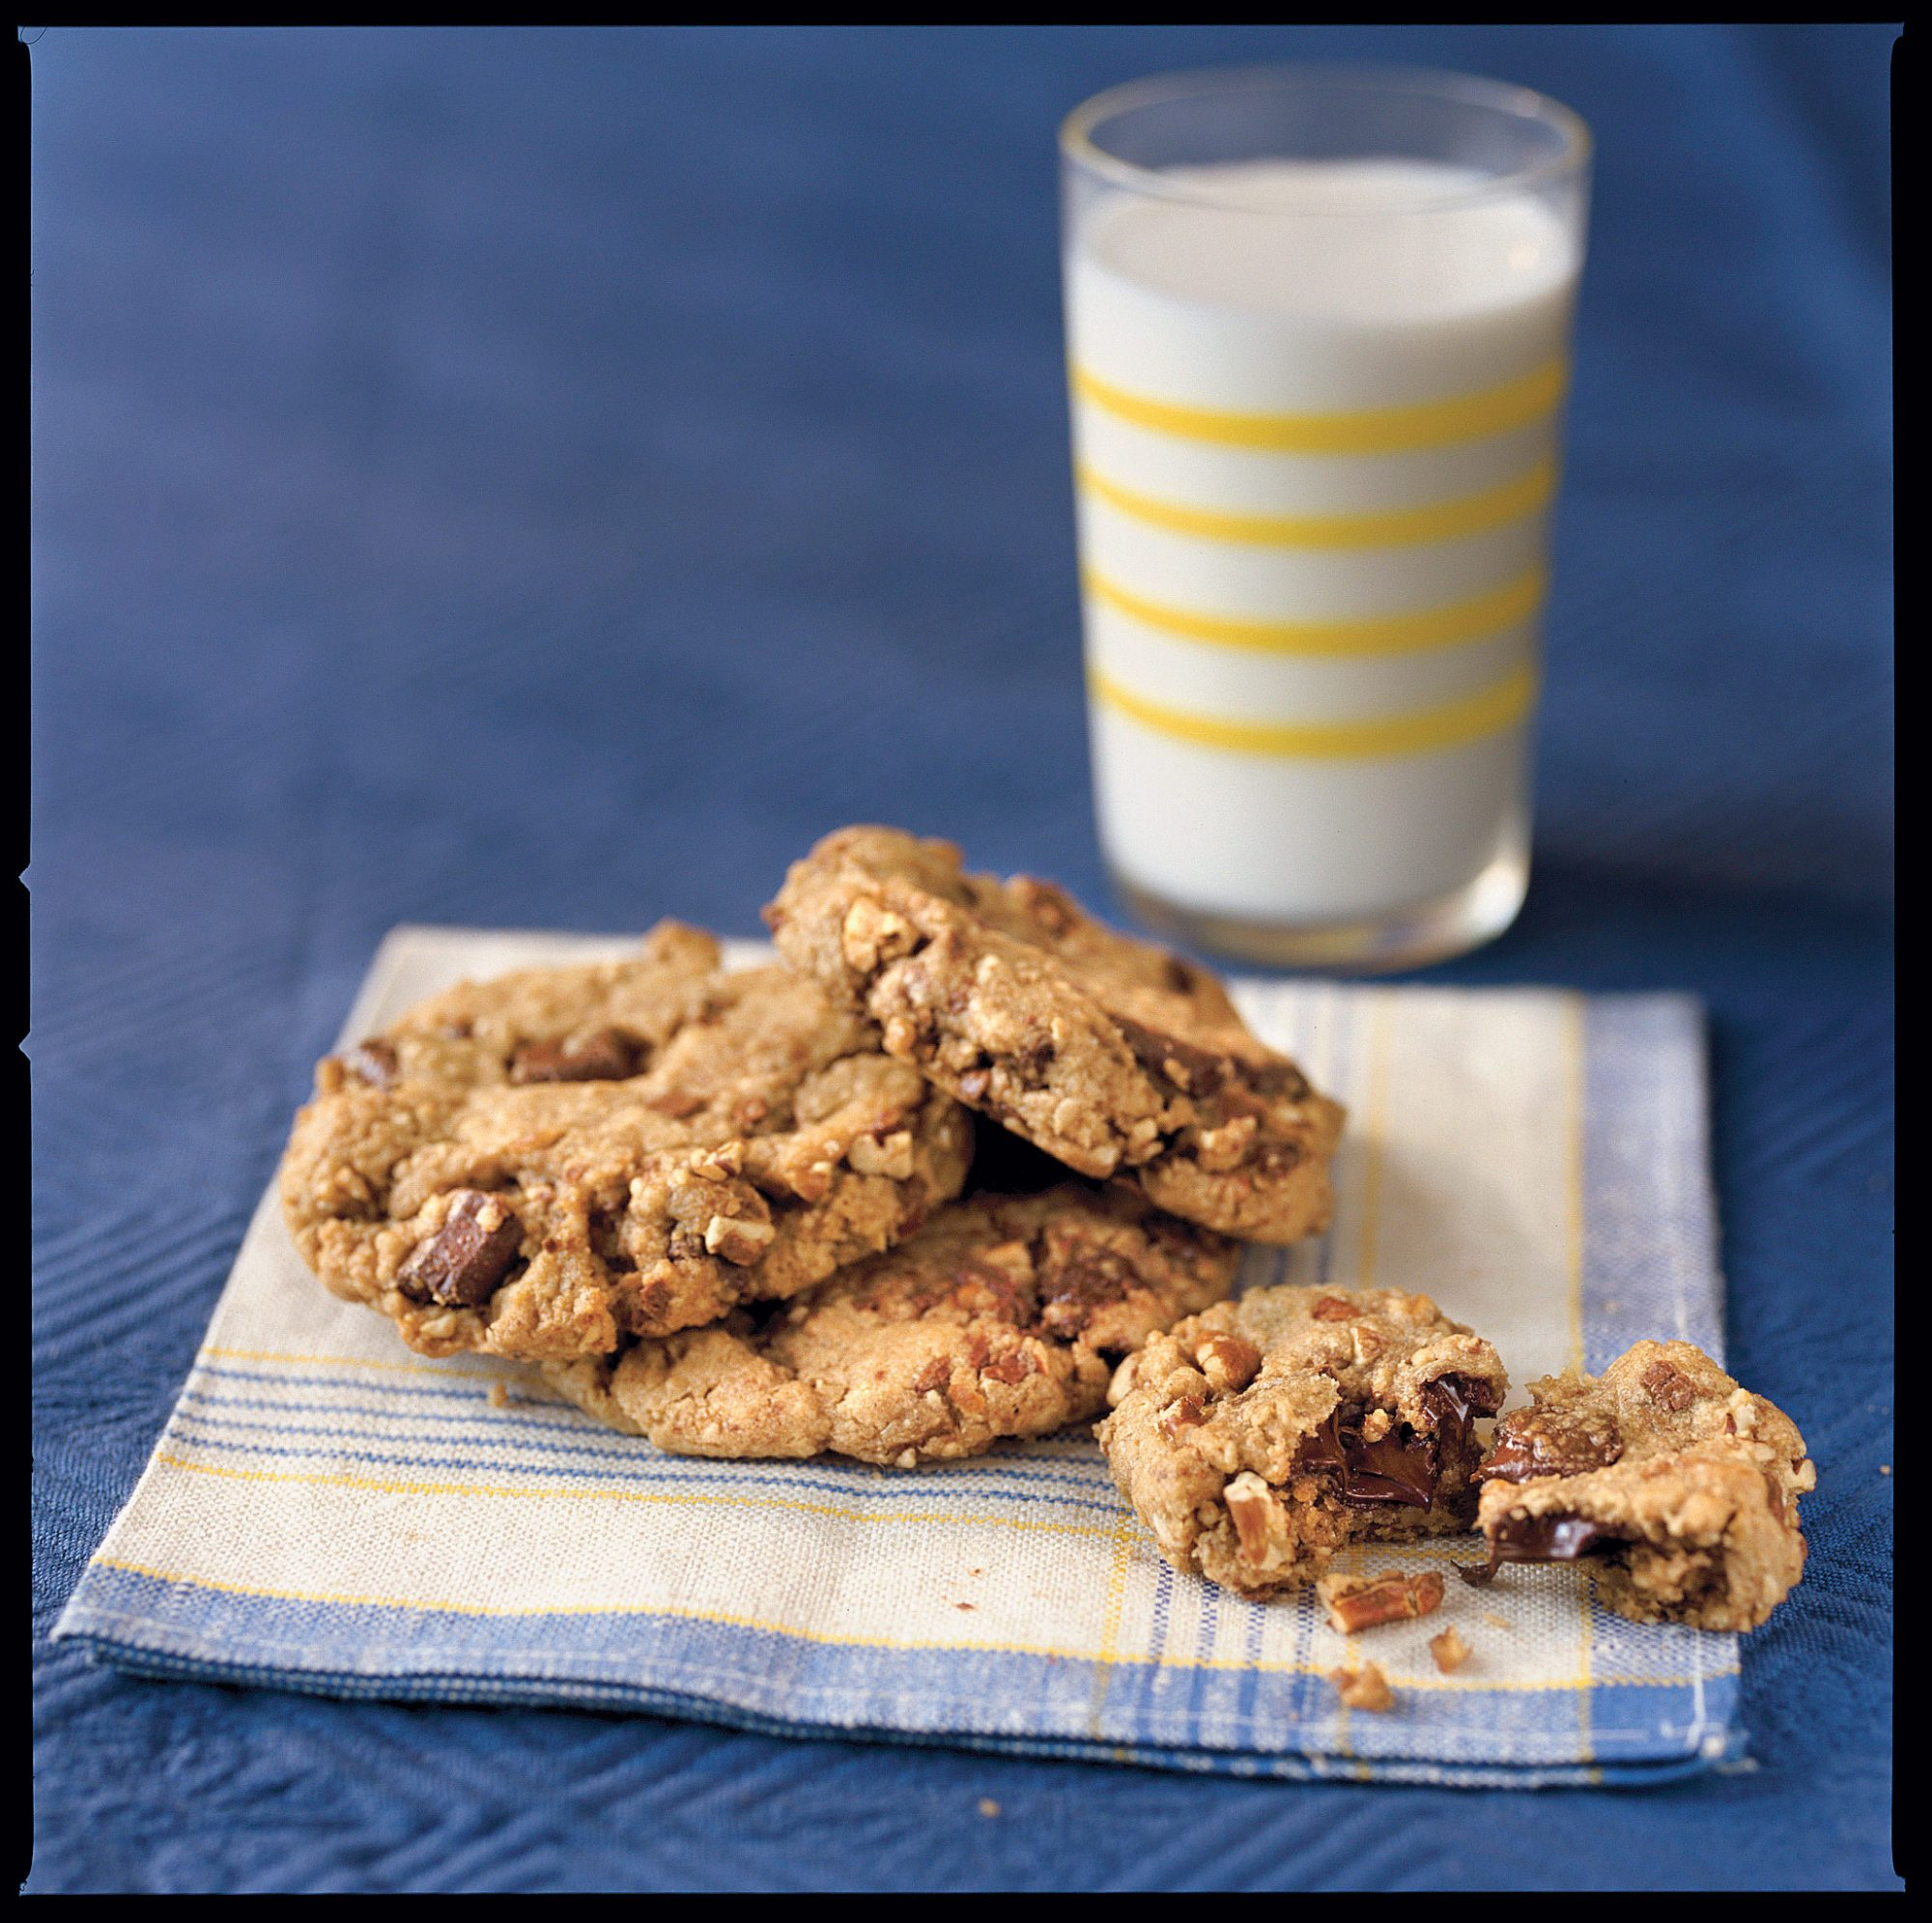 Best Cookies Recipes: Ultimate Chocolate Chip Cookies Recipes